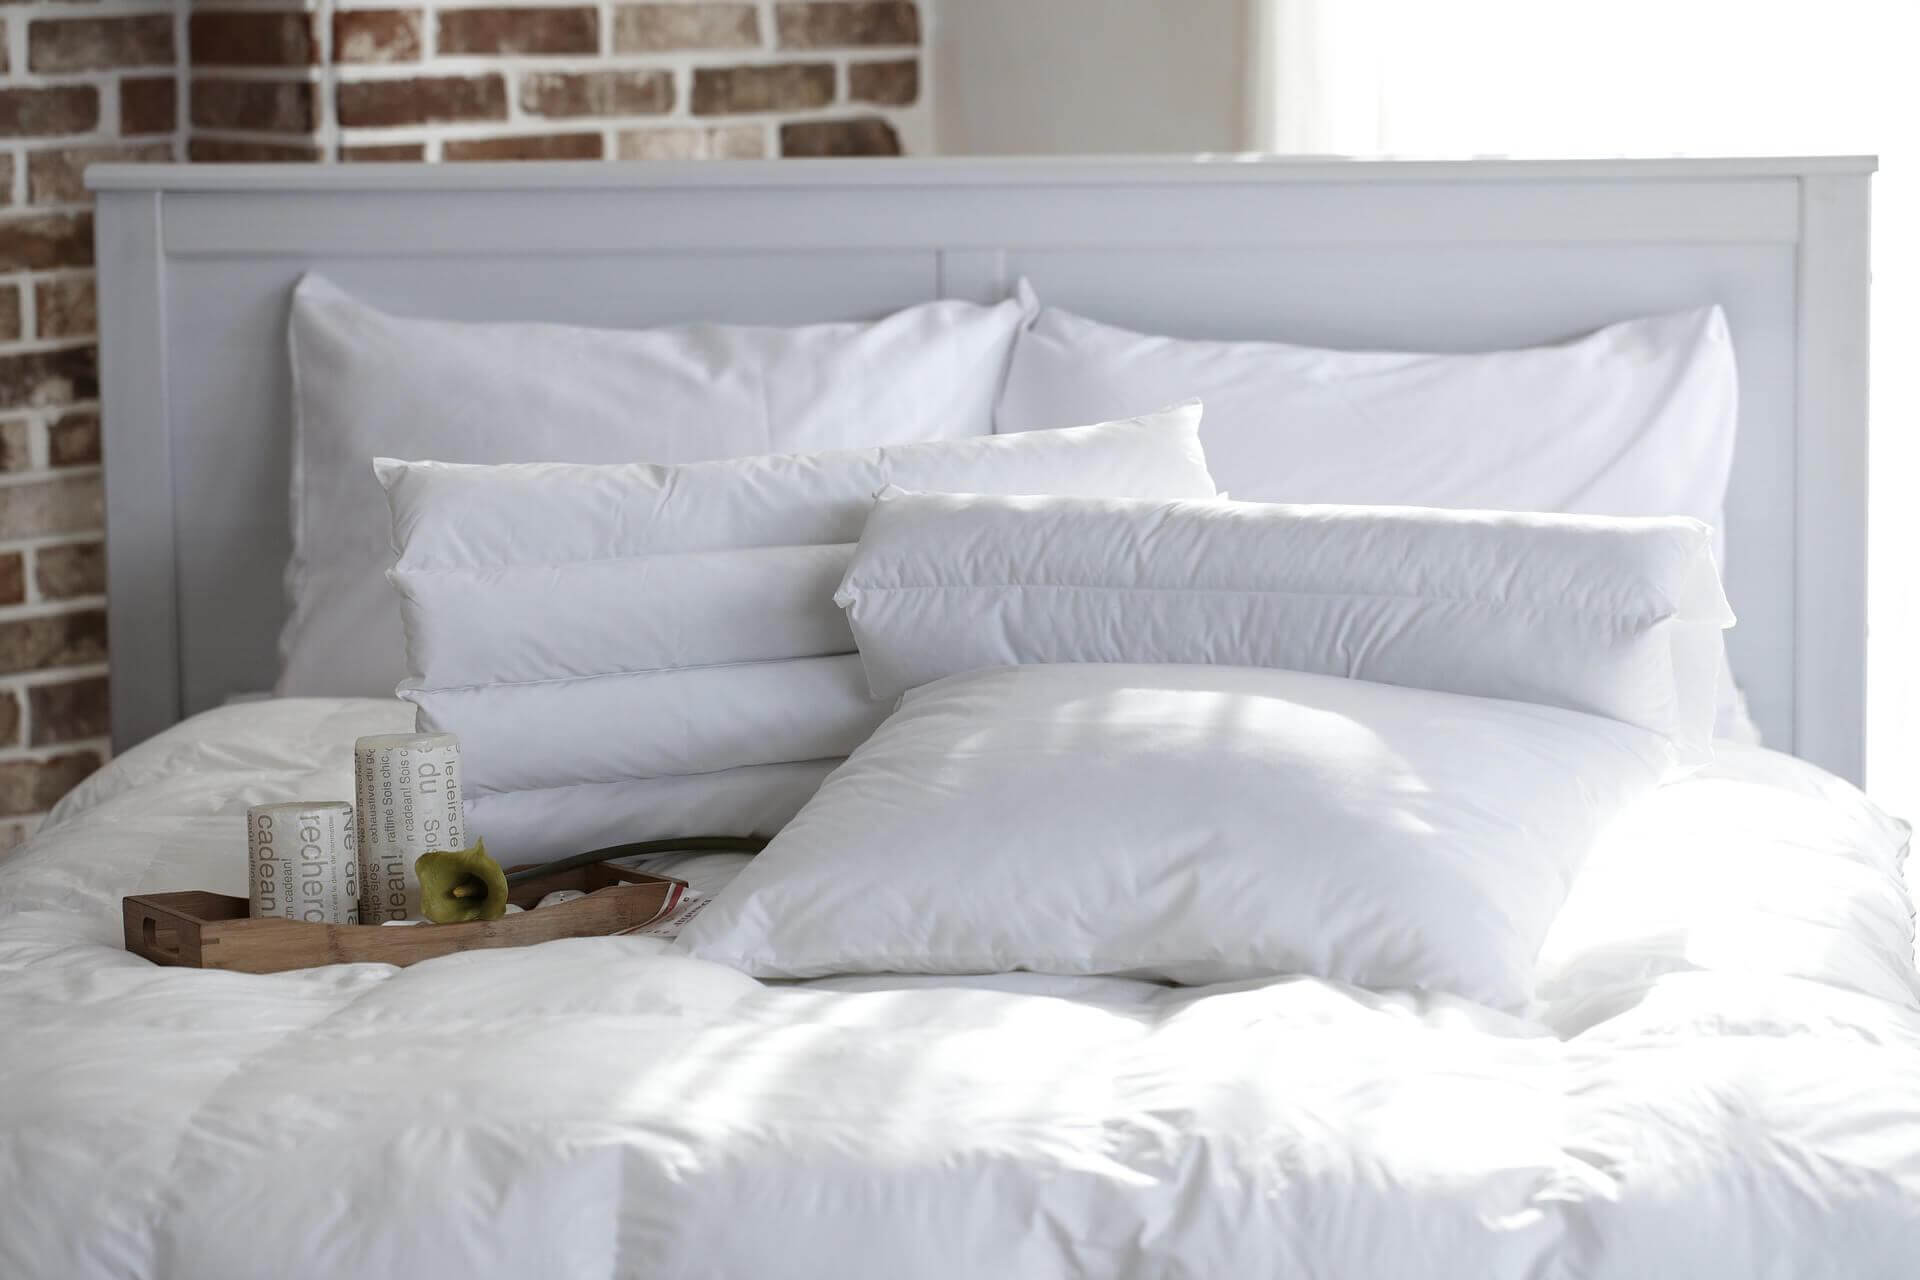 a lot of pillows on a big mattress: things that expire